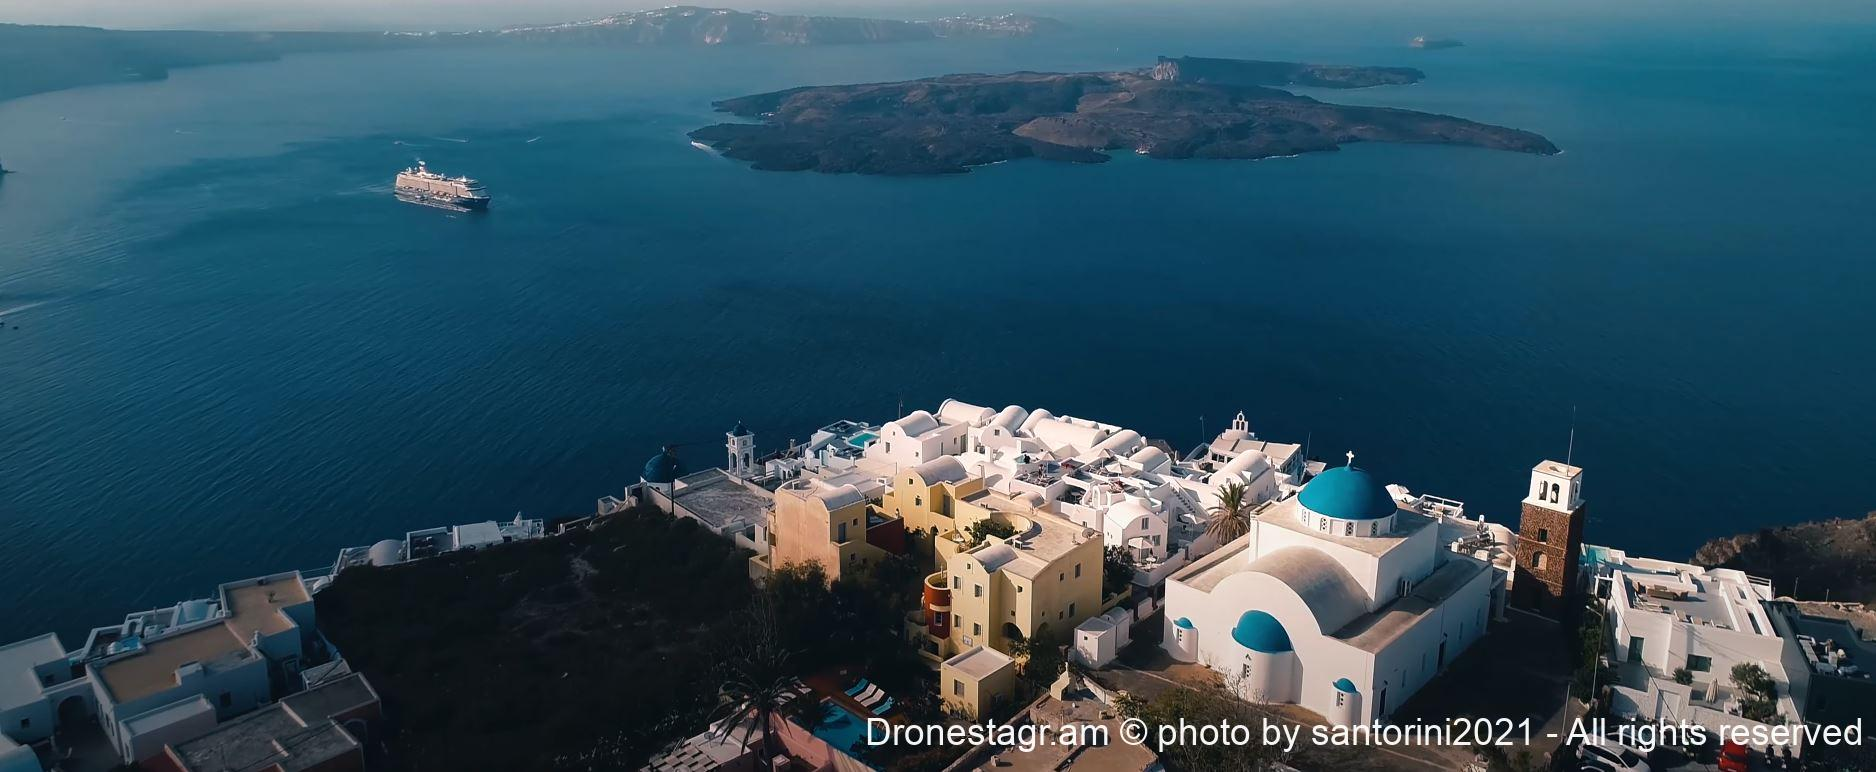 Hotels with best views in Santorini Greece